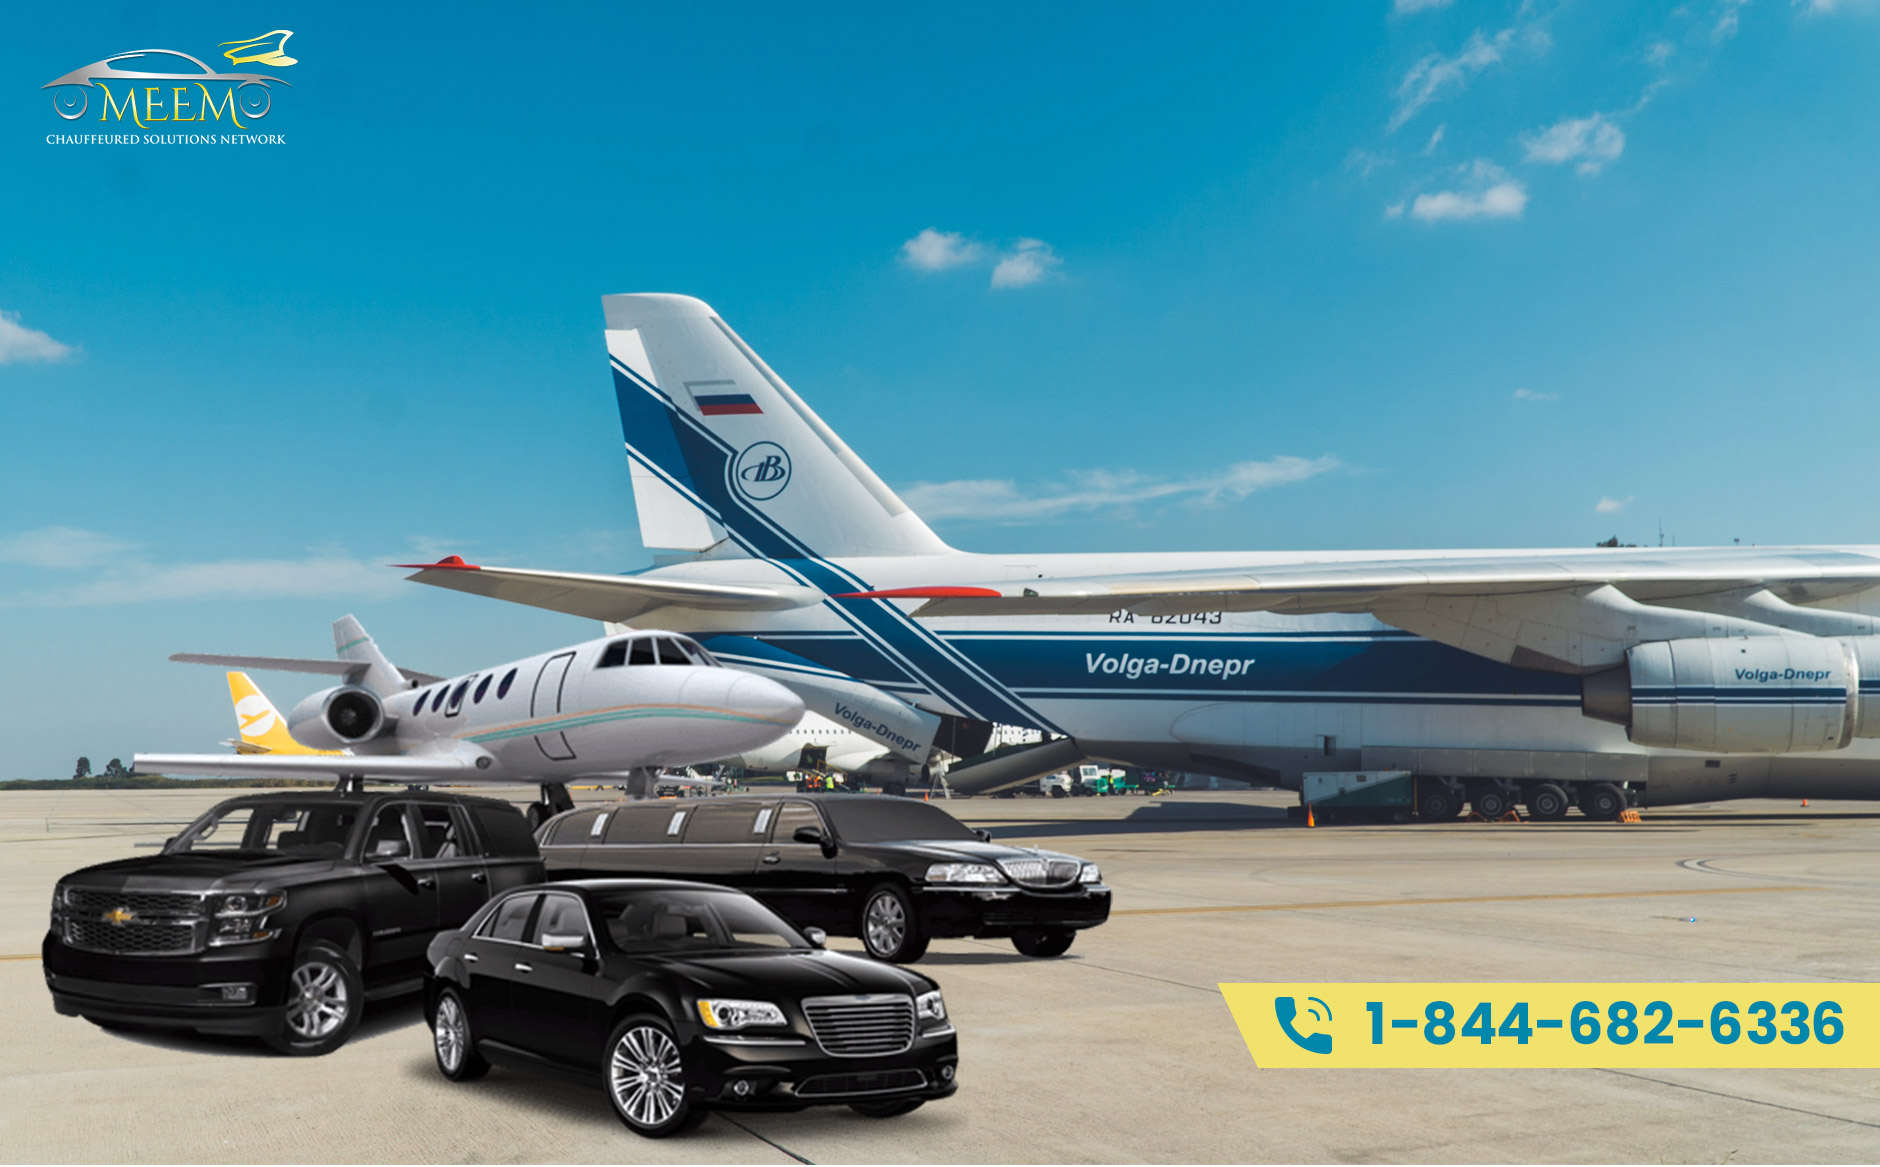 JFK limo and car service